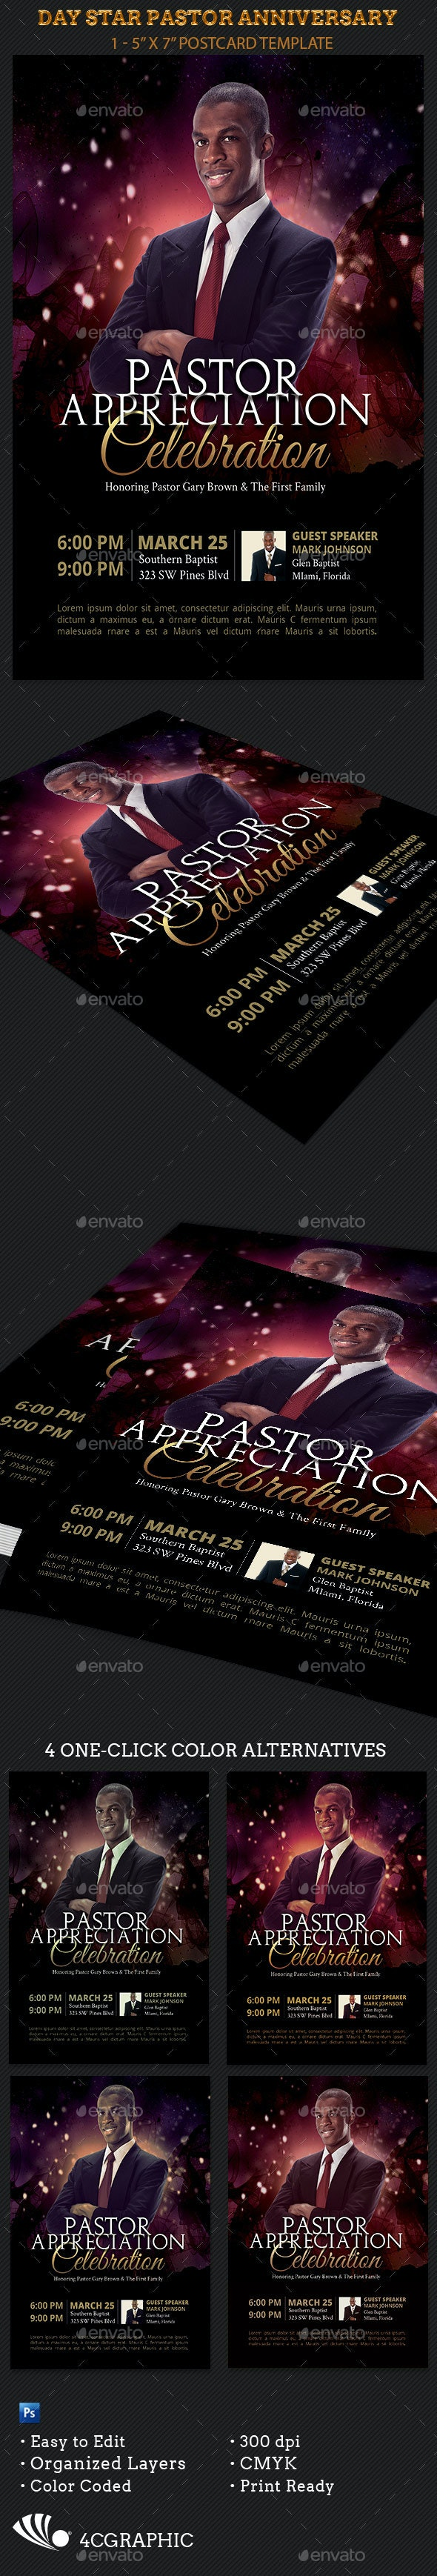 Day Star Pastor Anniversary Template - Flyers Print Templates